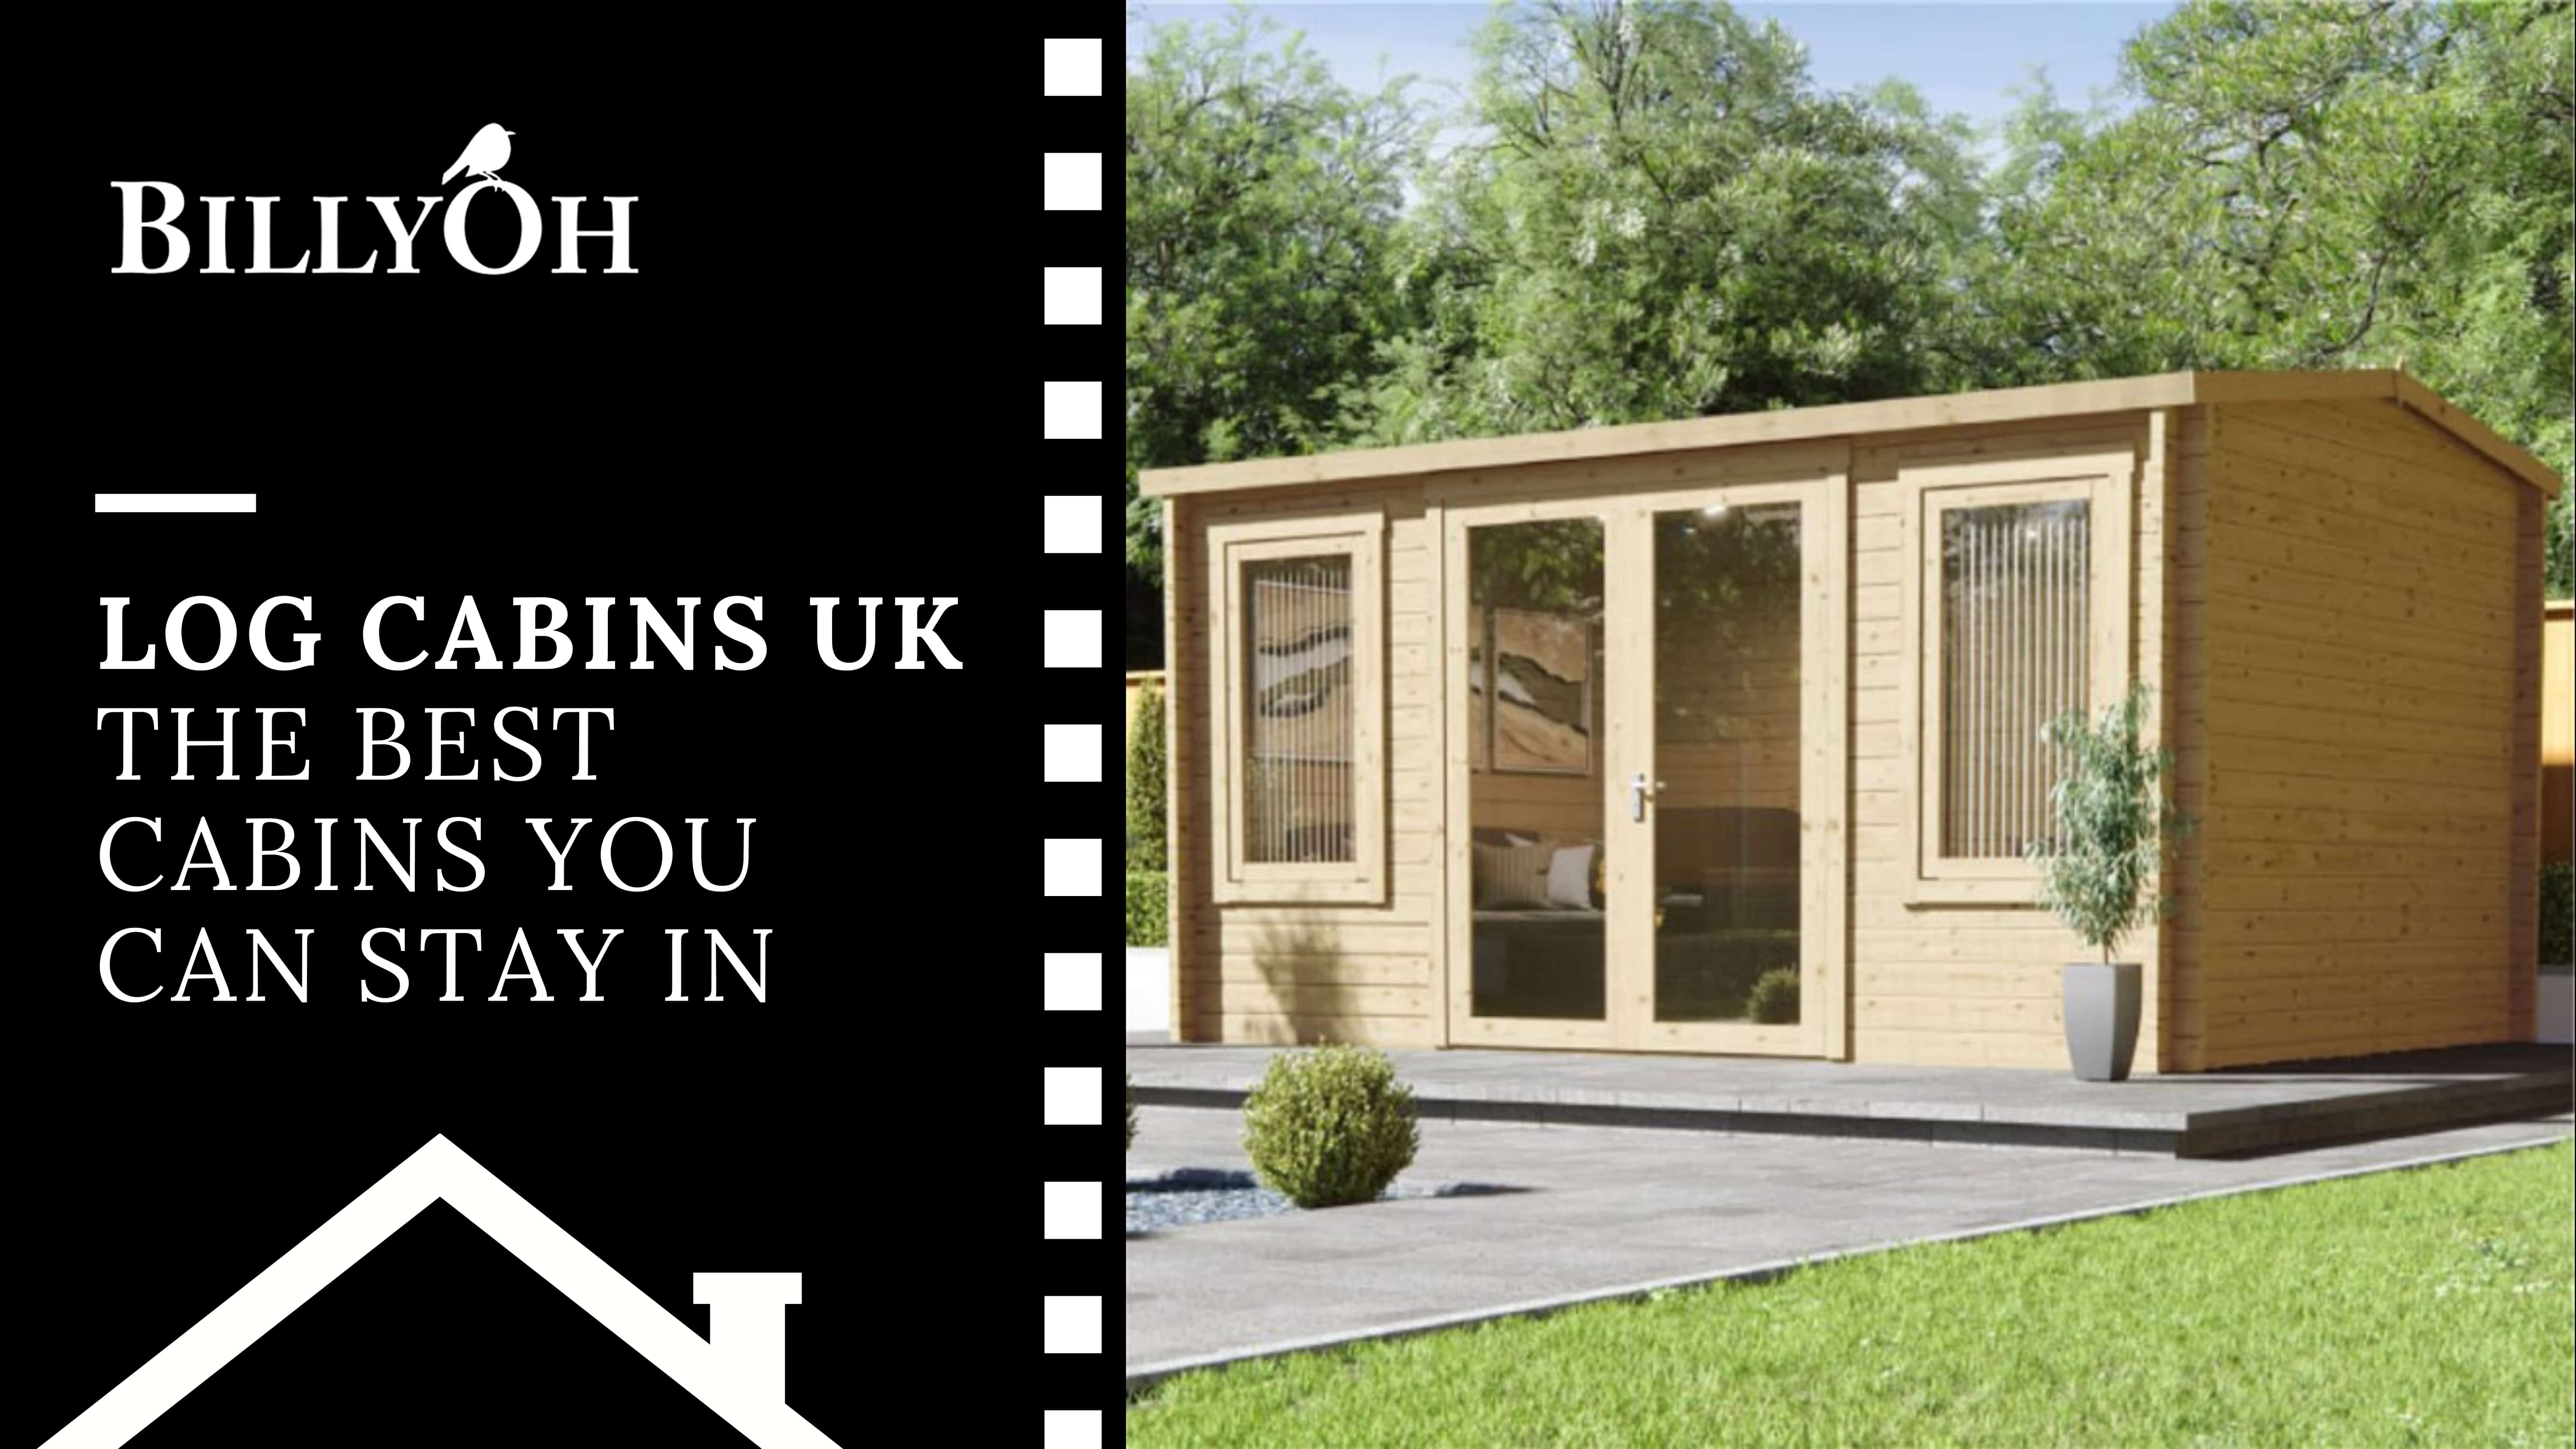 log cabins UK on a black and white cartoon film roll banner with a pent roof log cabin summerhouse